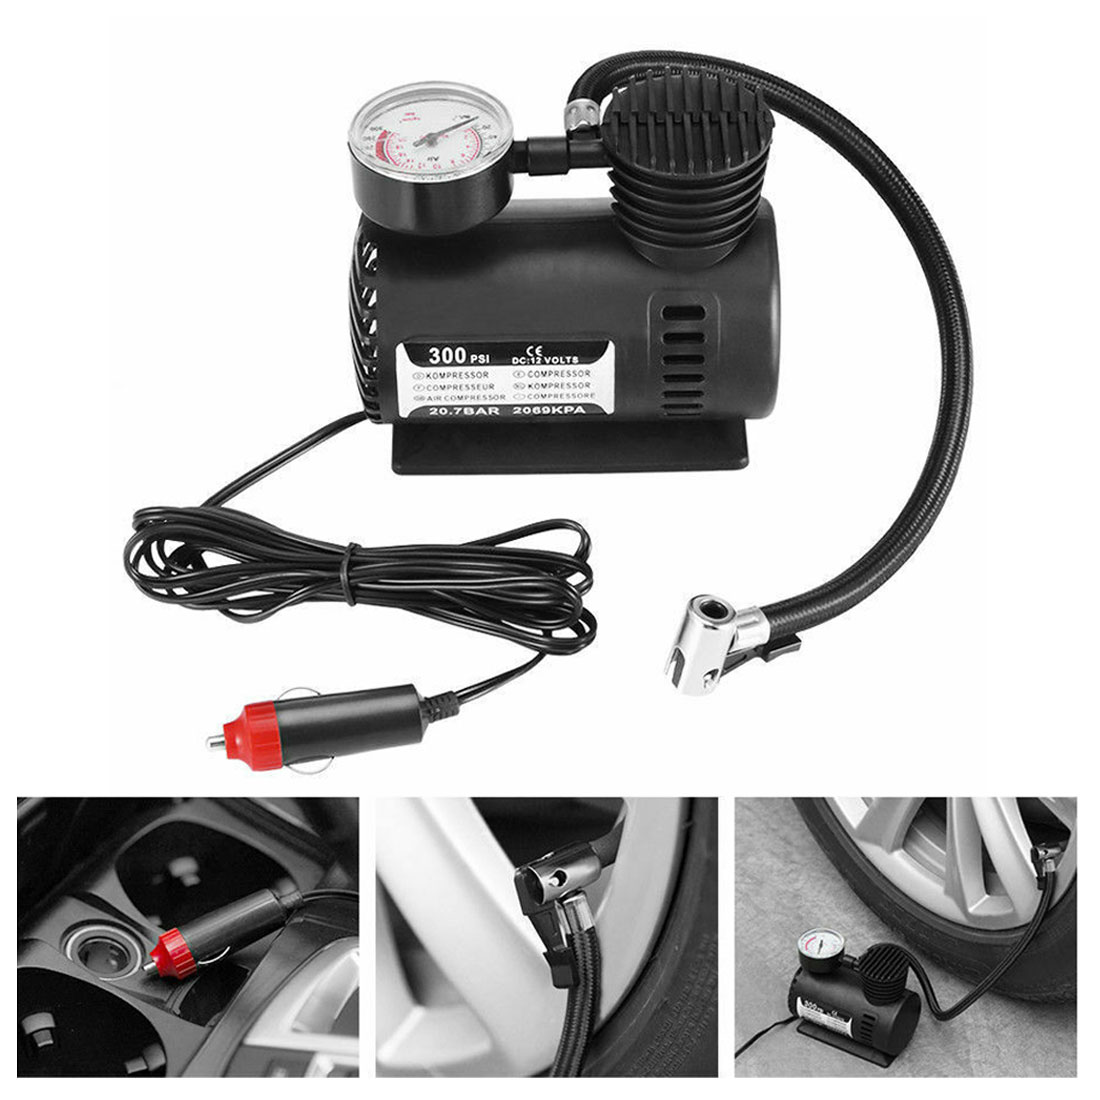 Car Accessories Automotive Durable Vehicle Mini Air Compressor 300 PSI Tire Inflator Pump 12V Car Parts